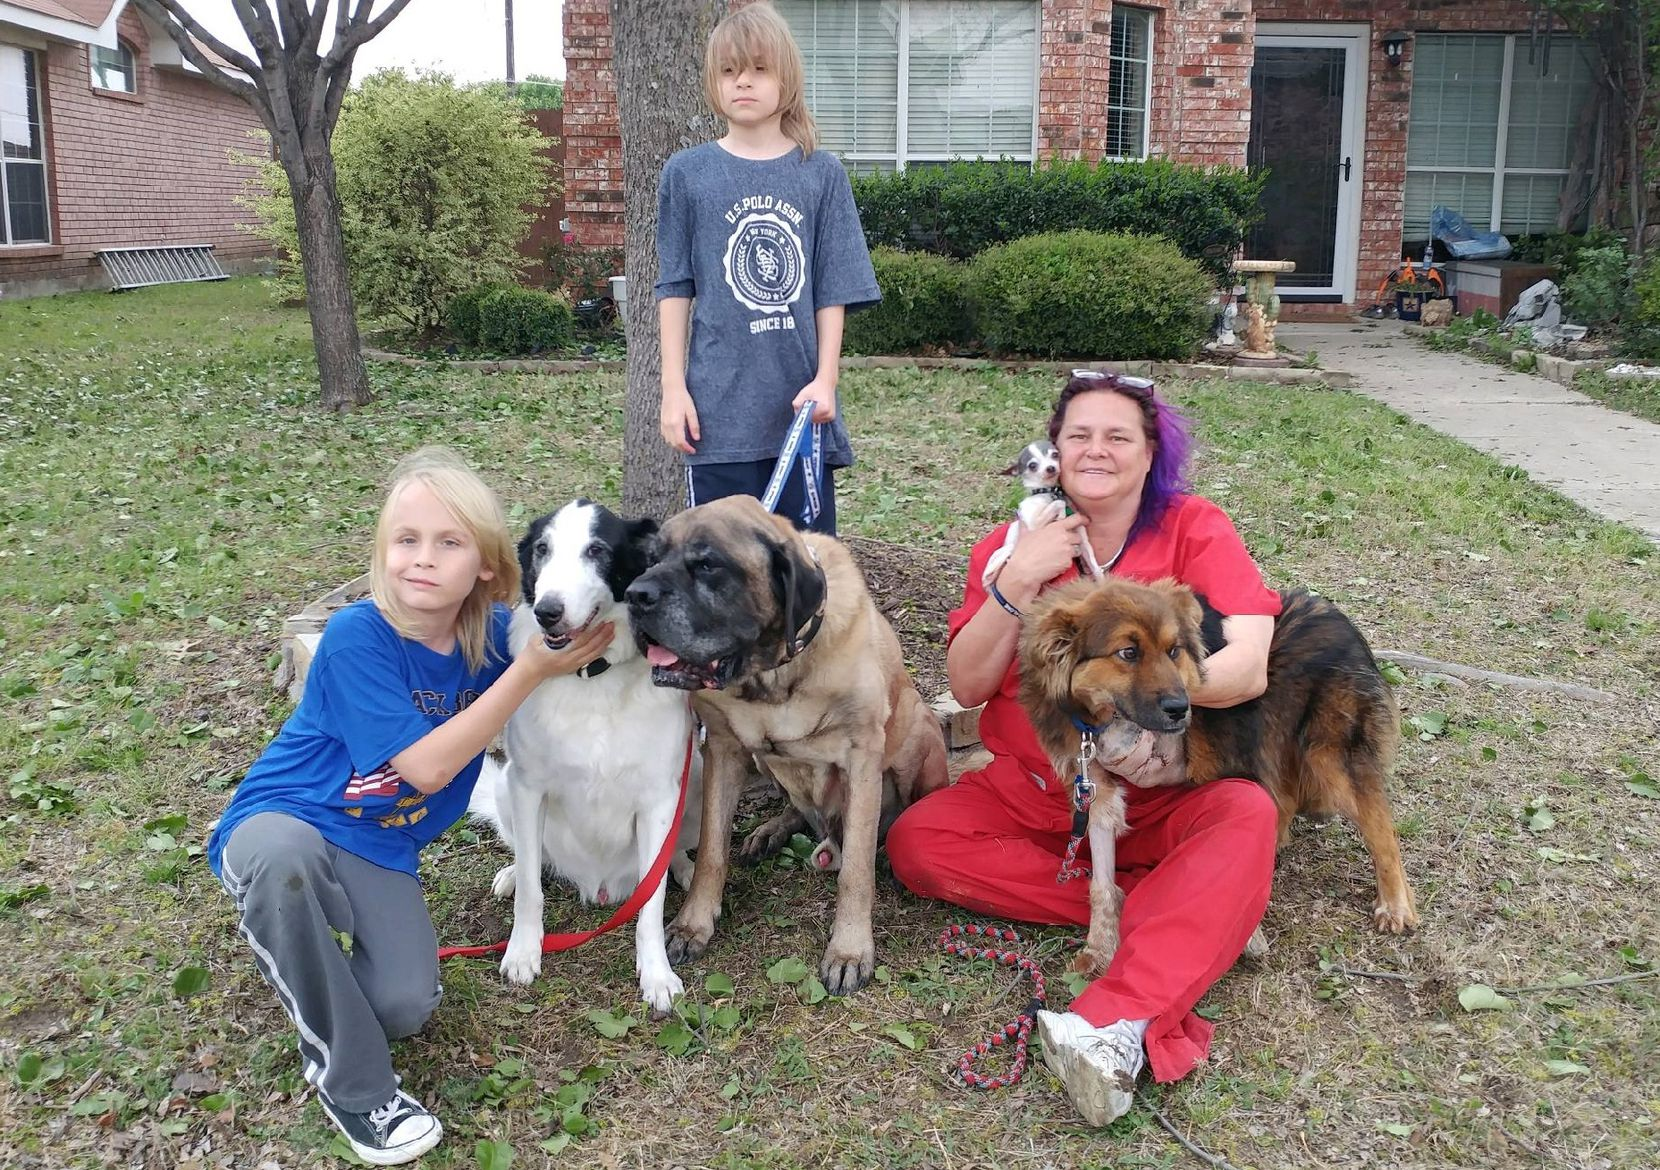 The rescued shepherd renamed Lt. Dan, far right, is shown with his new family in Little Elm. The family includes twins Brodie Lindstrom (kneeling) and Braedon Lindstrom, their mom, Kelly Lindstrom, along with smooth-coated collie Jack, the mastiff Beast and the Chihuahua named Pico.